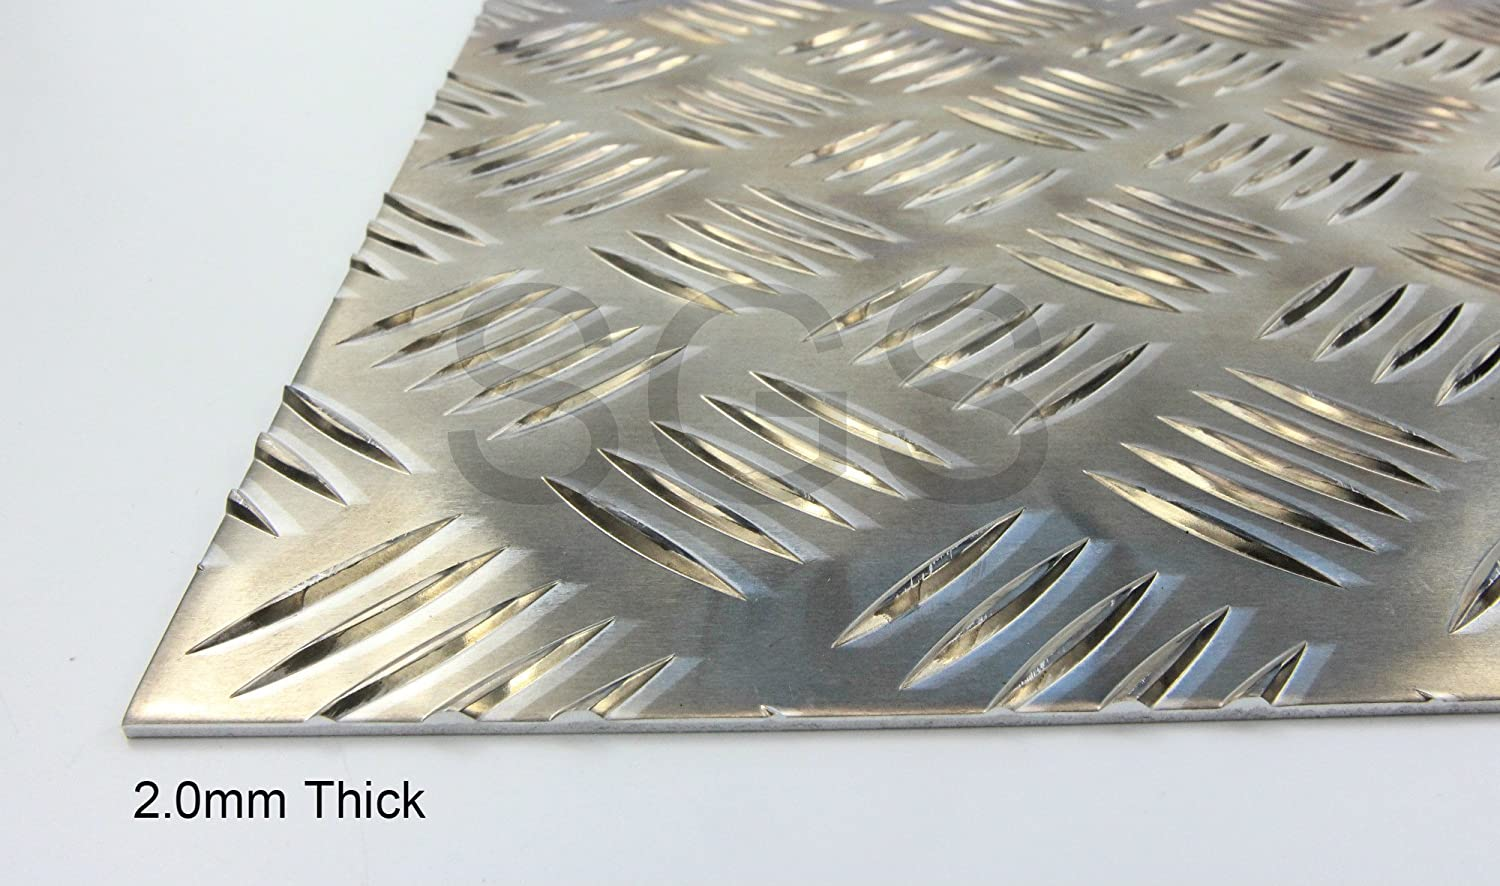 2.0mm Thick Aluminium Chequer Plate - 23 sizes to choose from (100mm x 100mm) SGS